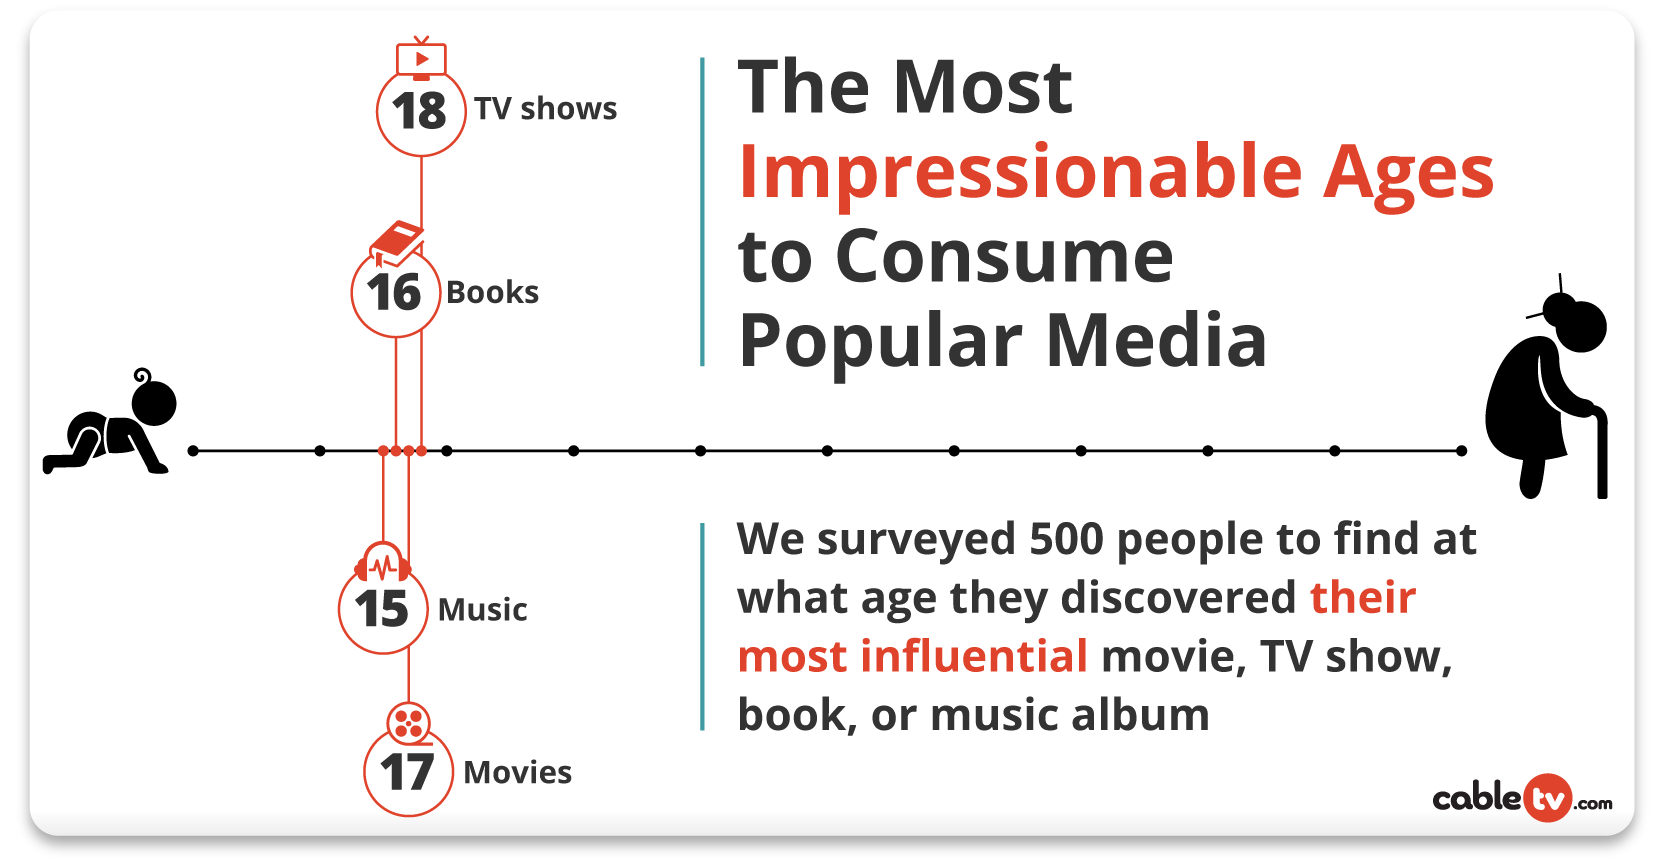 The Most Impressionable Ages to Consume Popular Media